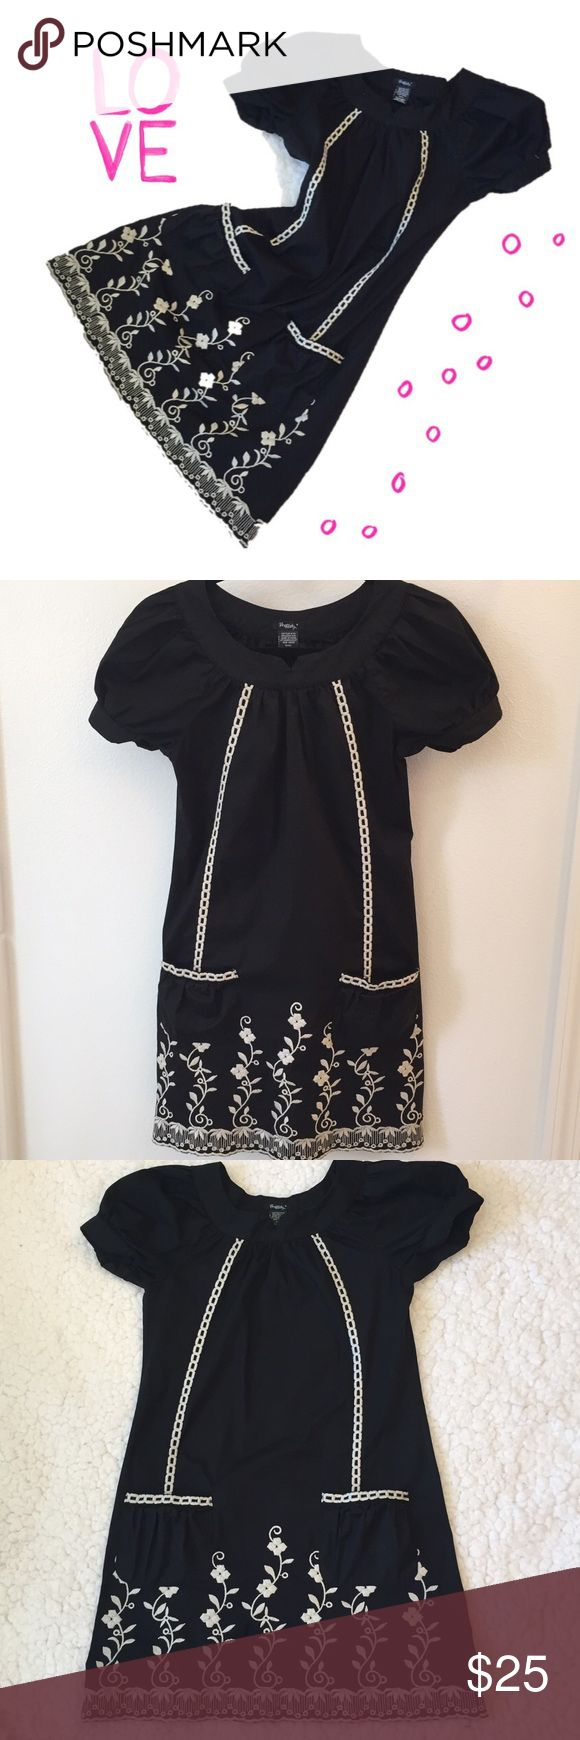 """Casual, embroidered little black dress 💋 A perfect little black dress for a casual look.  It has beautiful embroidery all around the bottom and the top side of pocket.  Tag Size: Small.  Measurements: Chest 33"""".  Hips: 37"""" Length 32 1/2"""".  Arm opening 10"""".  Throw on a pair of white converse and you're off!  💋 No trades please ❣️ no model ❣️Thanks  for stopping by 🤗 Rhapsody Dresses Midi"""